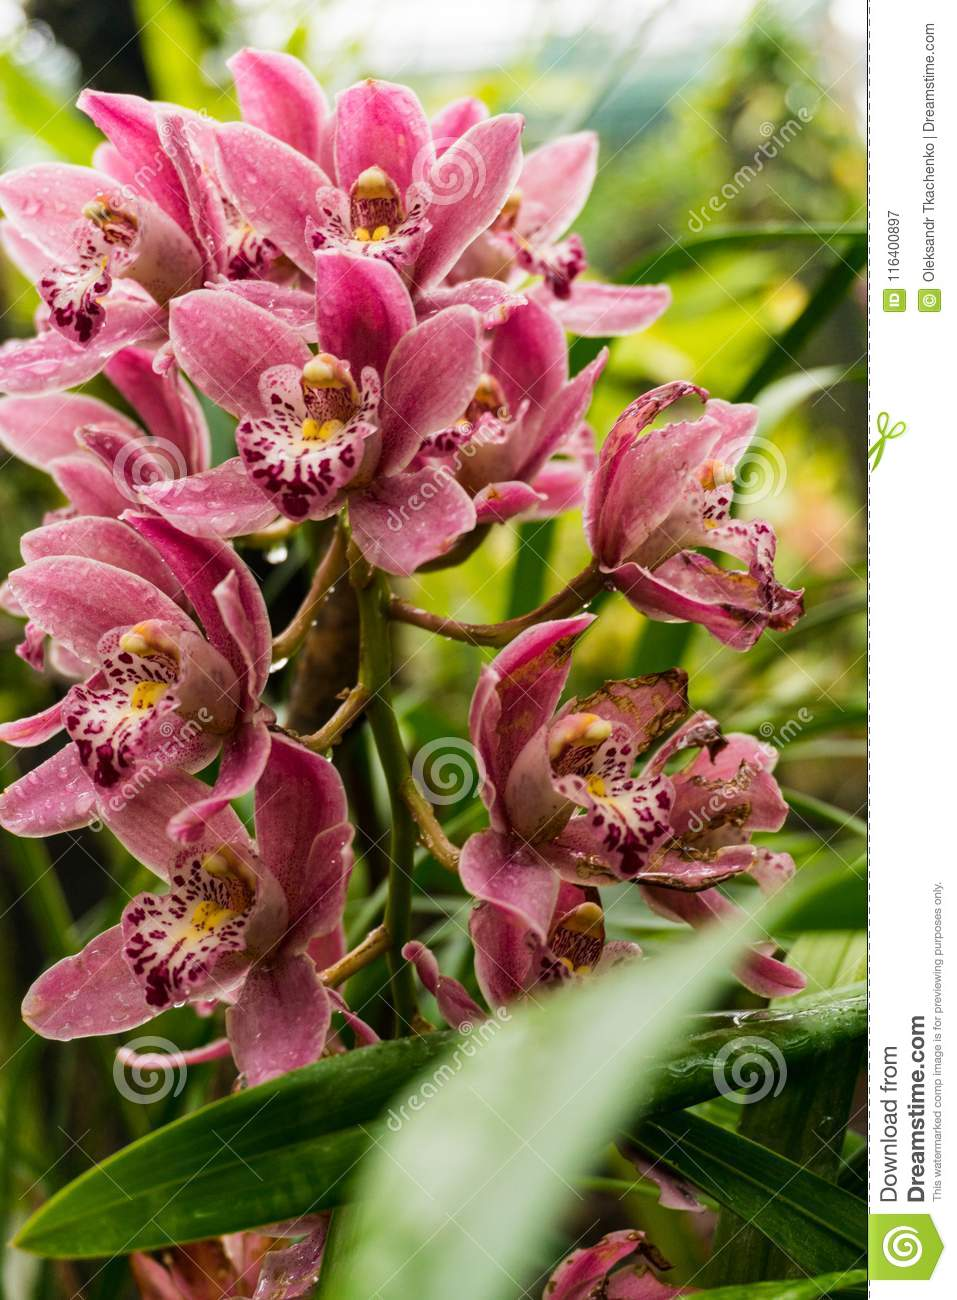 Colorful wild pink flowers on the branch in the tropical rain forest download colorful wild pink flowers on the branch in the tropical rain forest stock image mightylinksfo